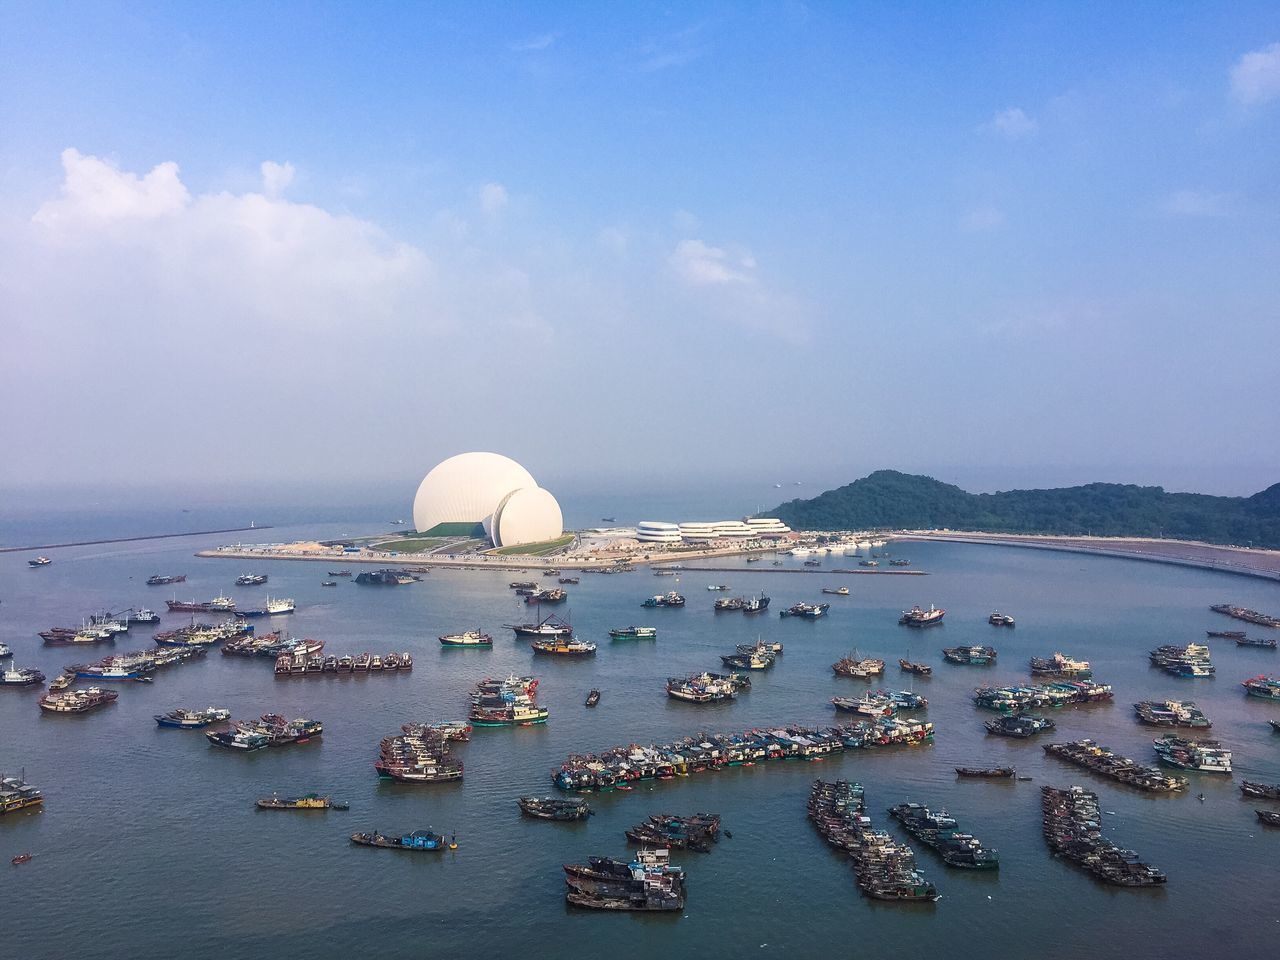 Sea Water Sky Dome Outdoors Building Exterior Nautical Vessel Mountain My Year My View Travel Destinations Architecture City No People Scenics Day Beauty In Nature Nature Opéra Zhuhai Zhuhai Opera Shell Sea Shell Boats Fishing Boat Fishing Boats